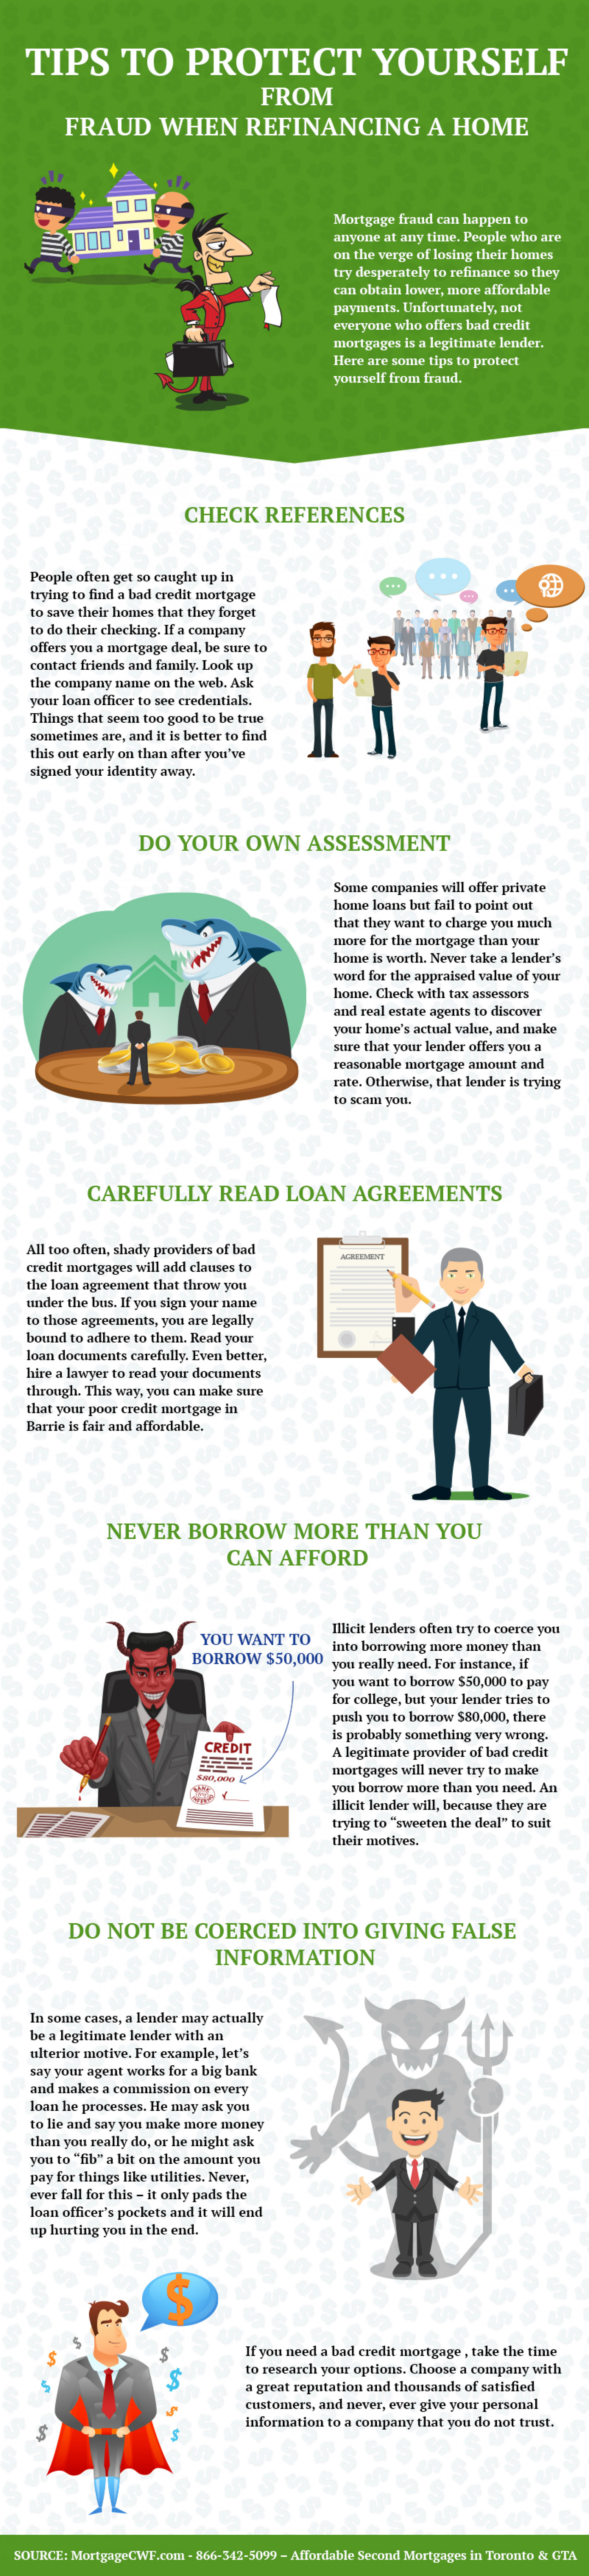 Tips to Protect Yourself from Fraud when Refinancing a Home Infographic